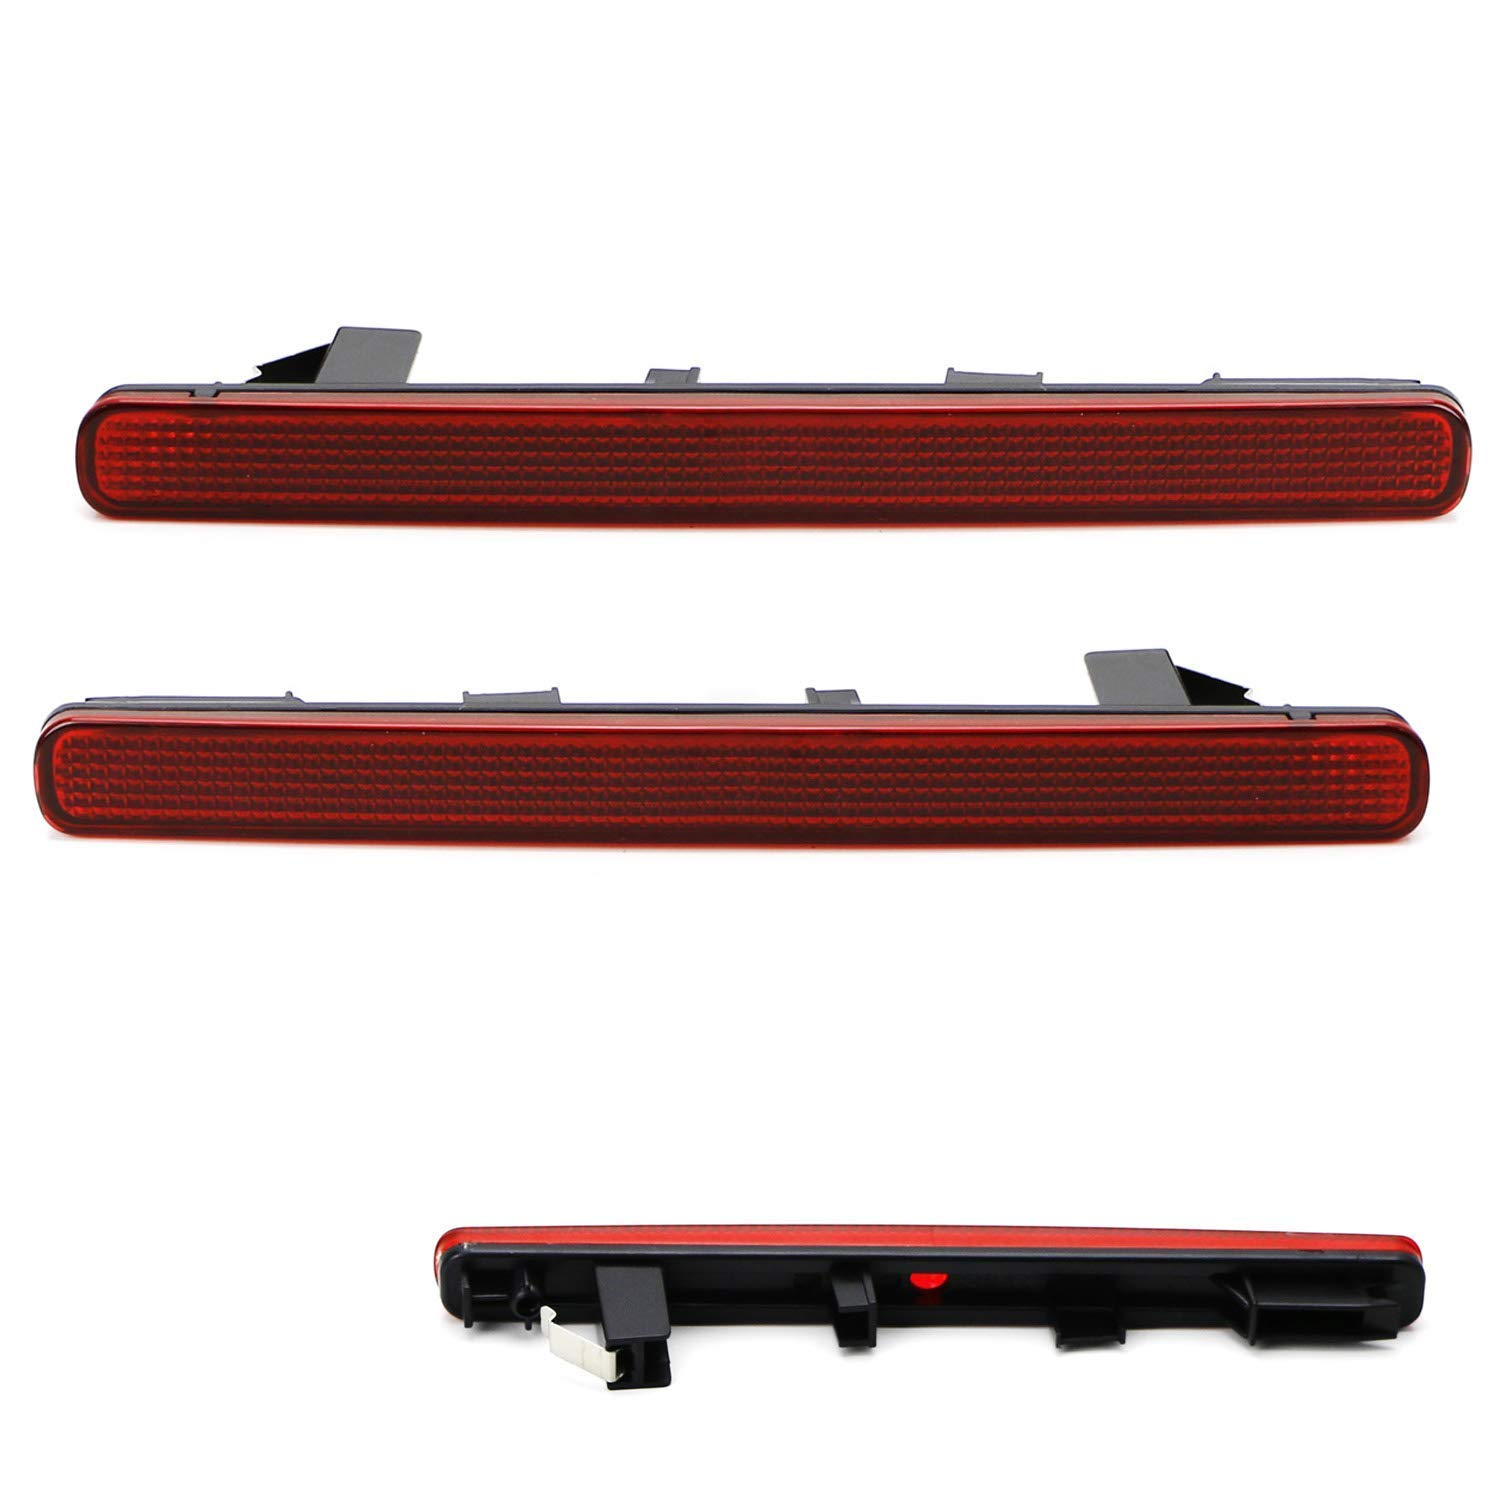 OE-Spec LH RH Assembly iJDMTOY Red Lens Rear Bumper Reflector Lenses For 2009-2014 Acura TSX Euro Accord